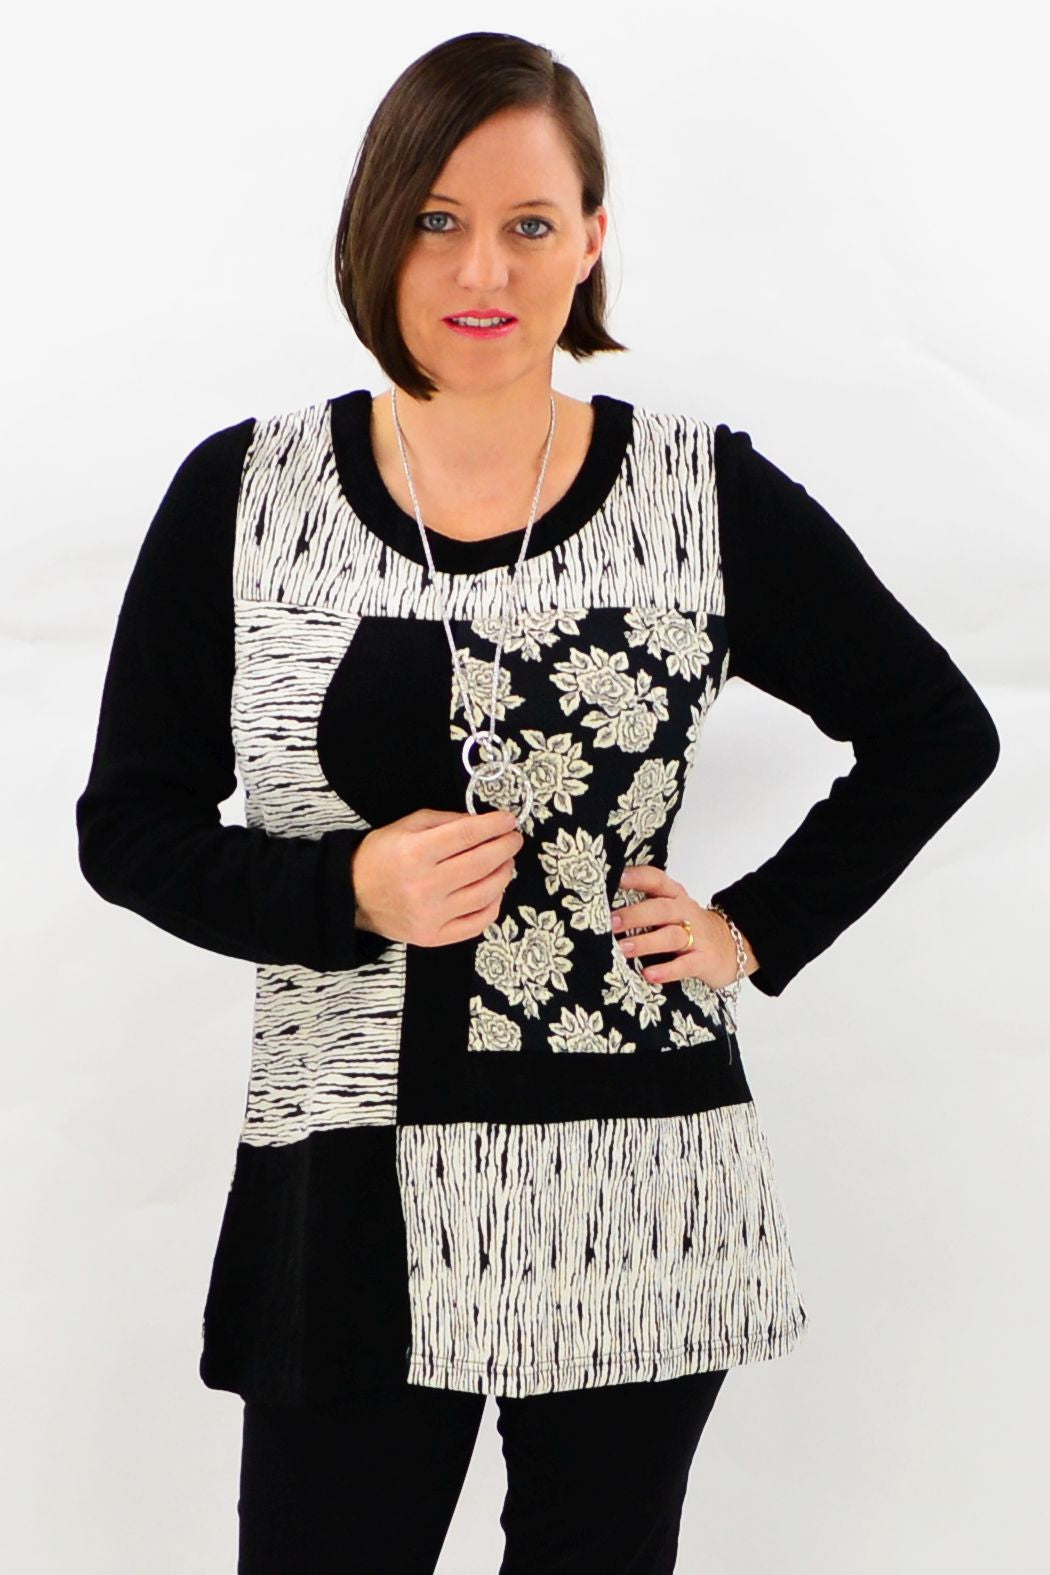 African Rose Tunic Top | I Love Tunics | Tunic Tops | Tunic Dresses | Women's Tops | Plus Size Australia | Mature Fashion